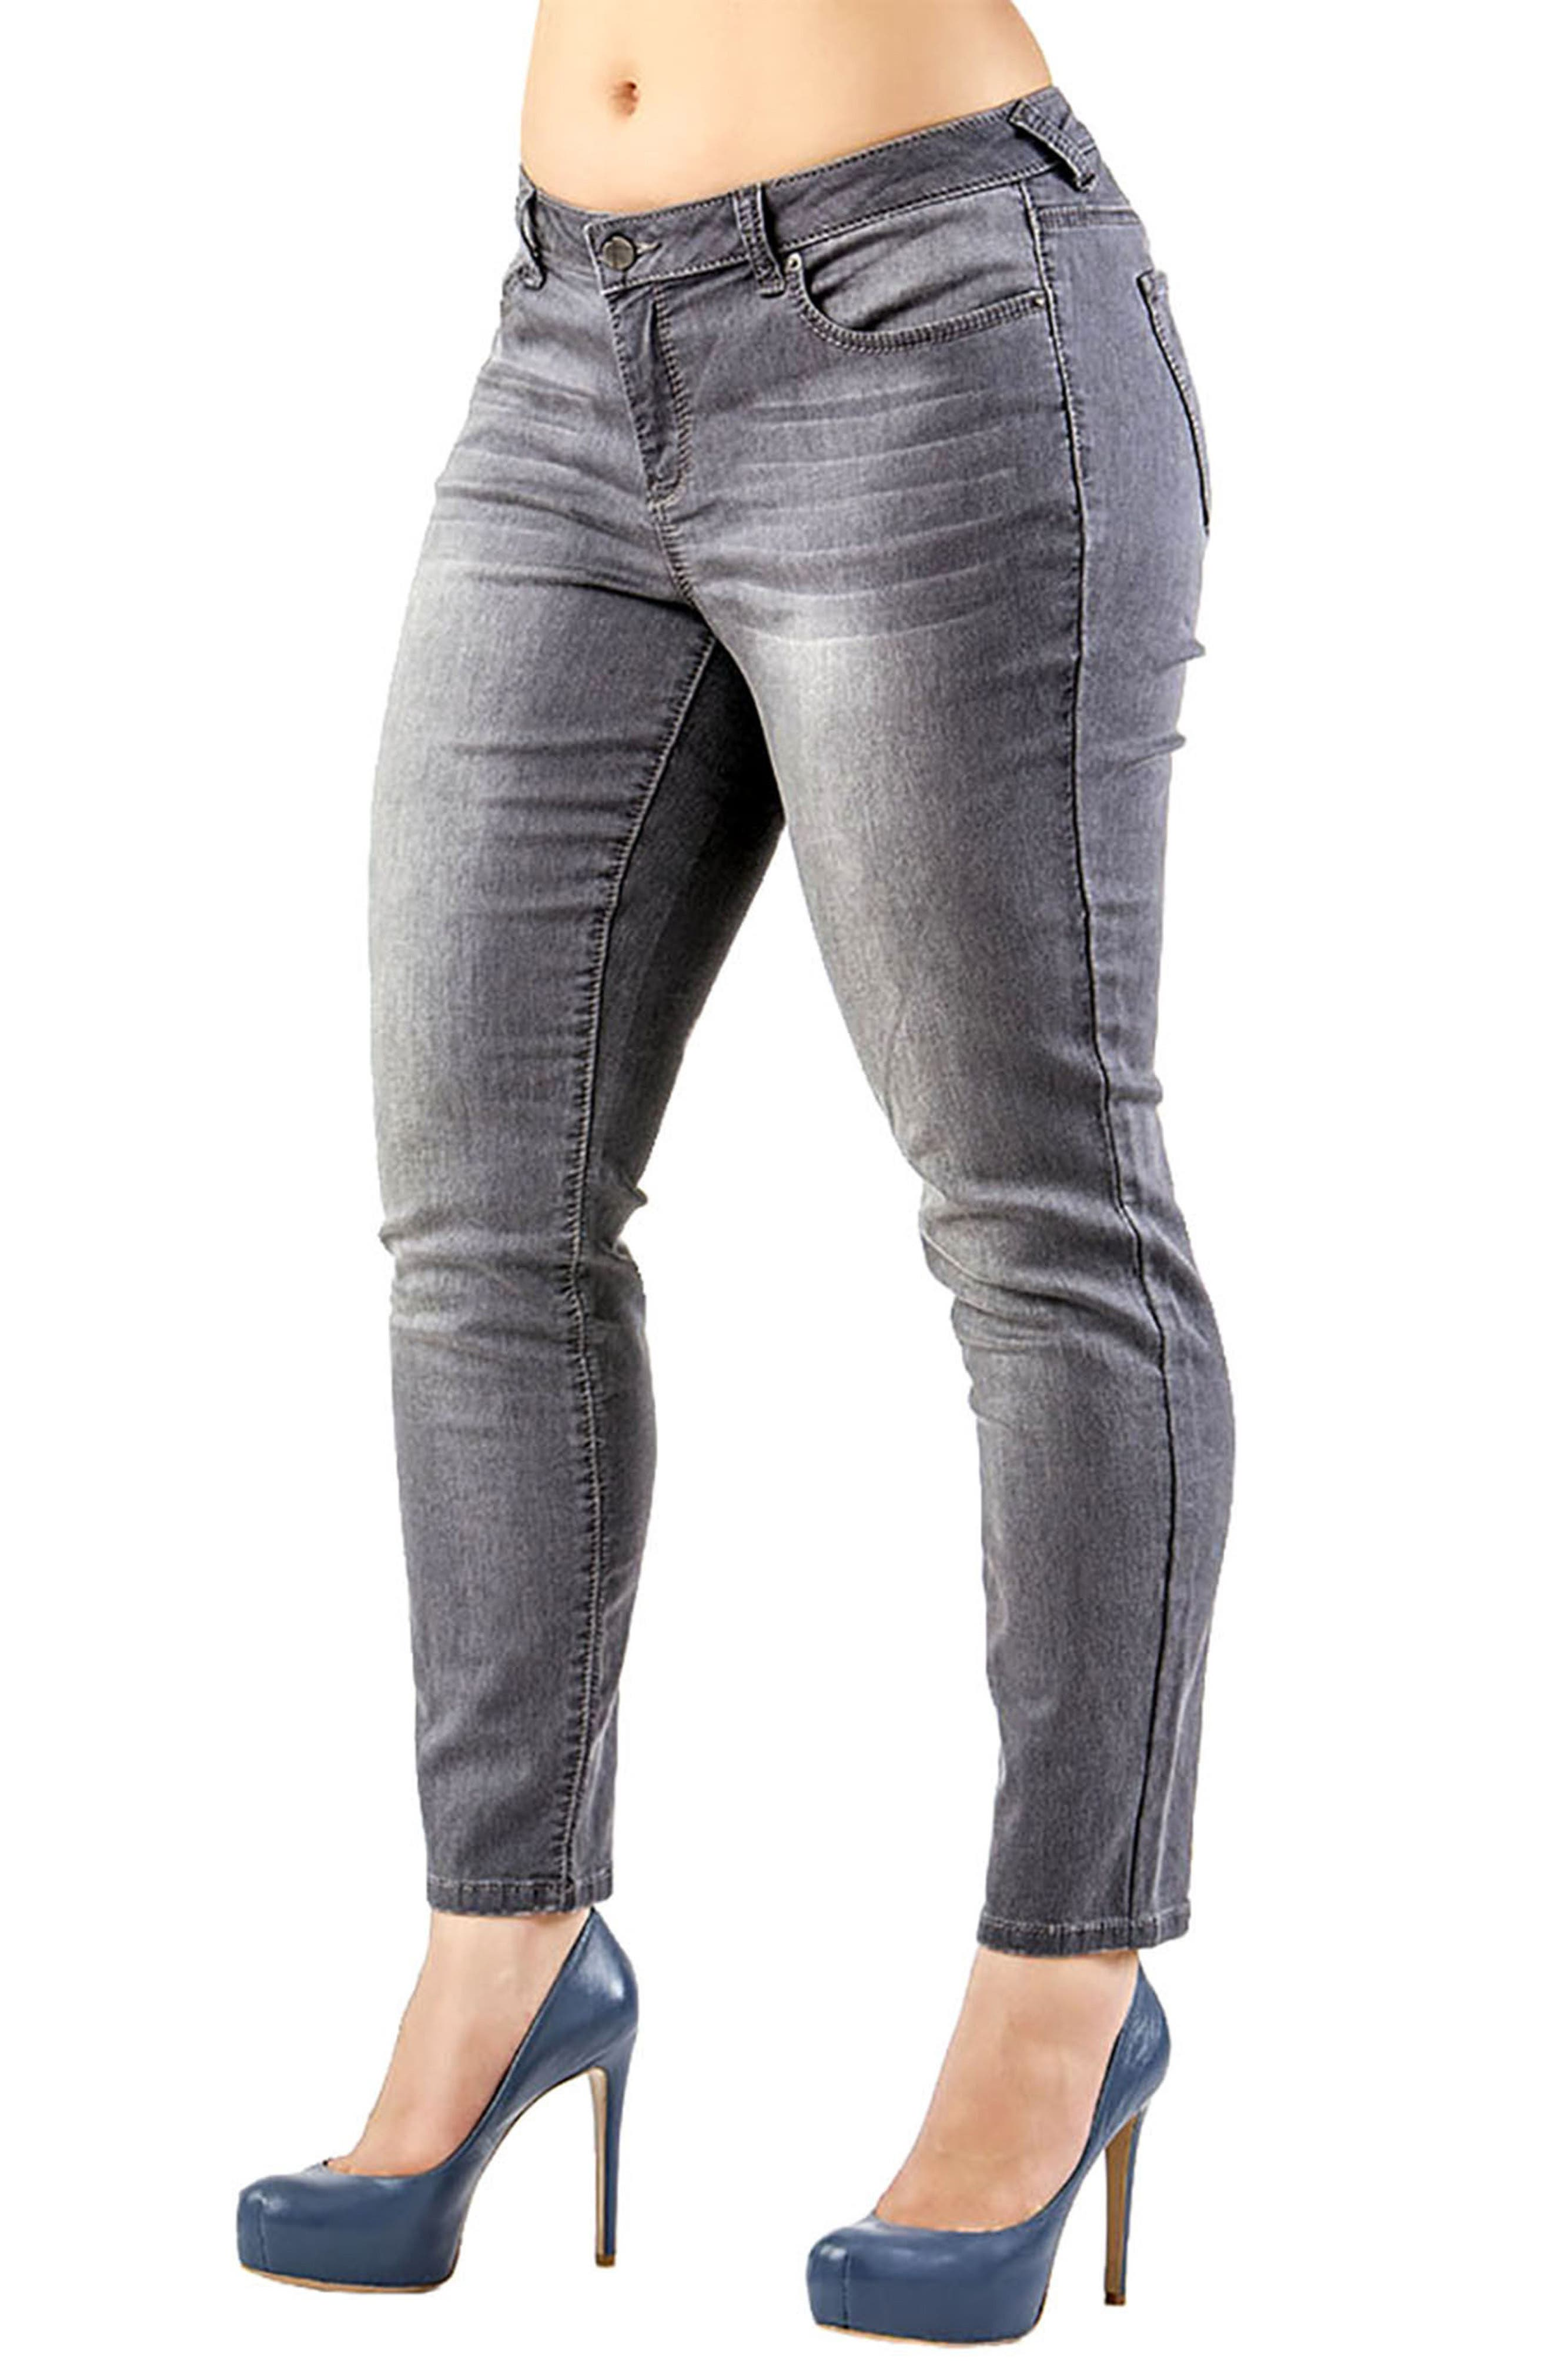 Minnie Stretch Denim Skinny Jeans,                         Main,                         color, GREY